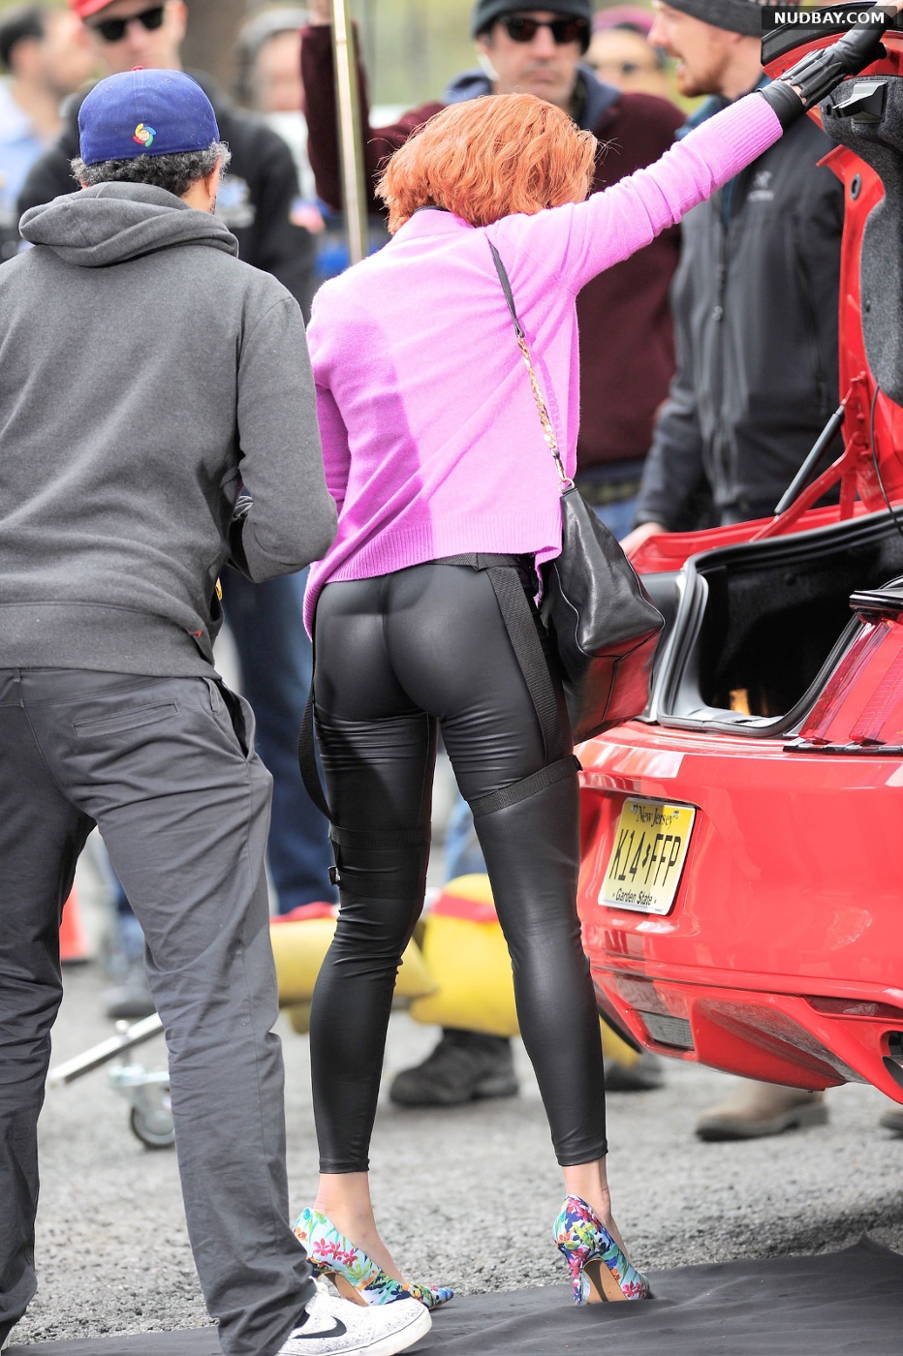 Scarlett Johansson Ass Filming Scenes For Saturday Night Live in New York's Central Park May 01 2015